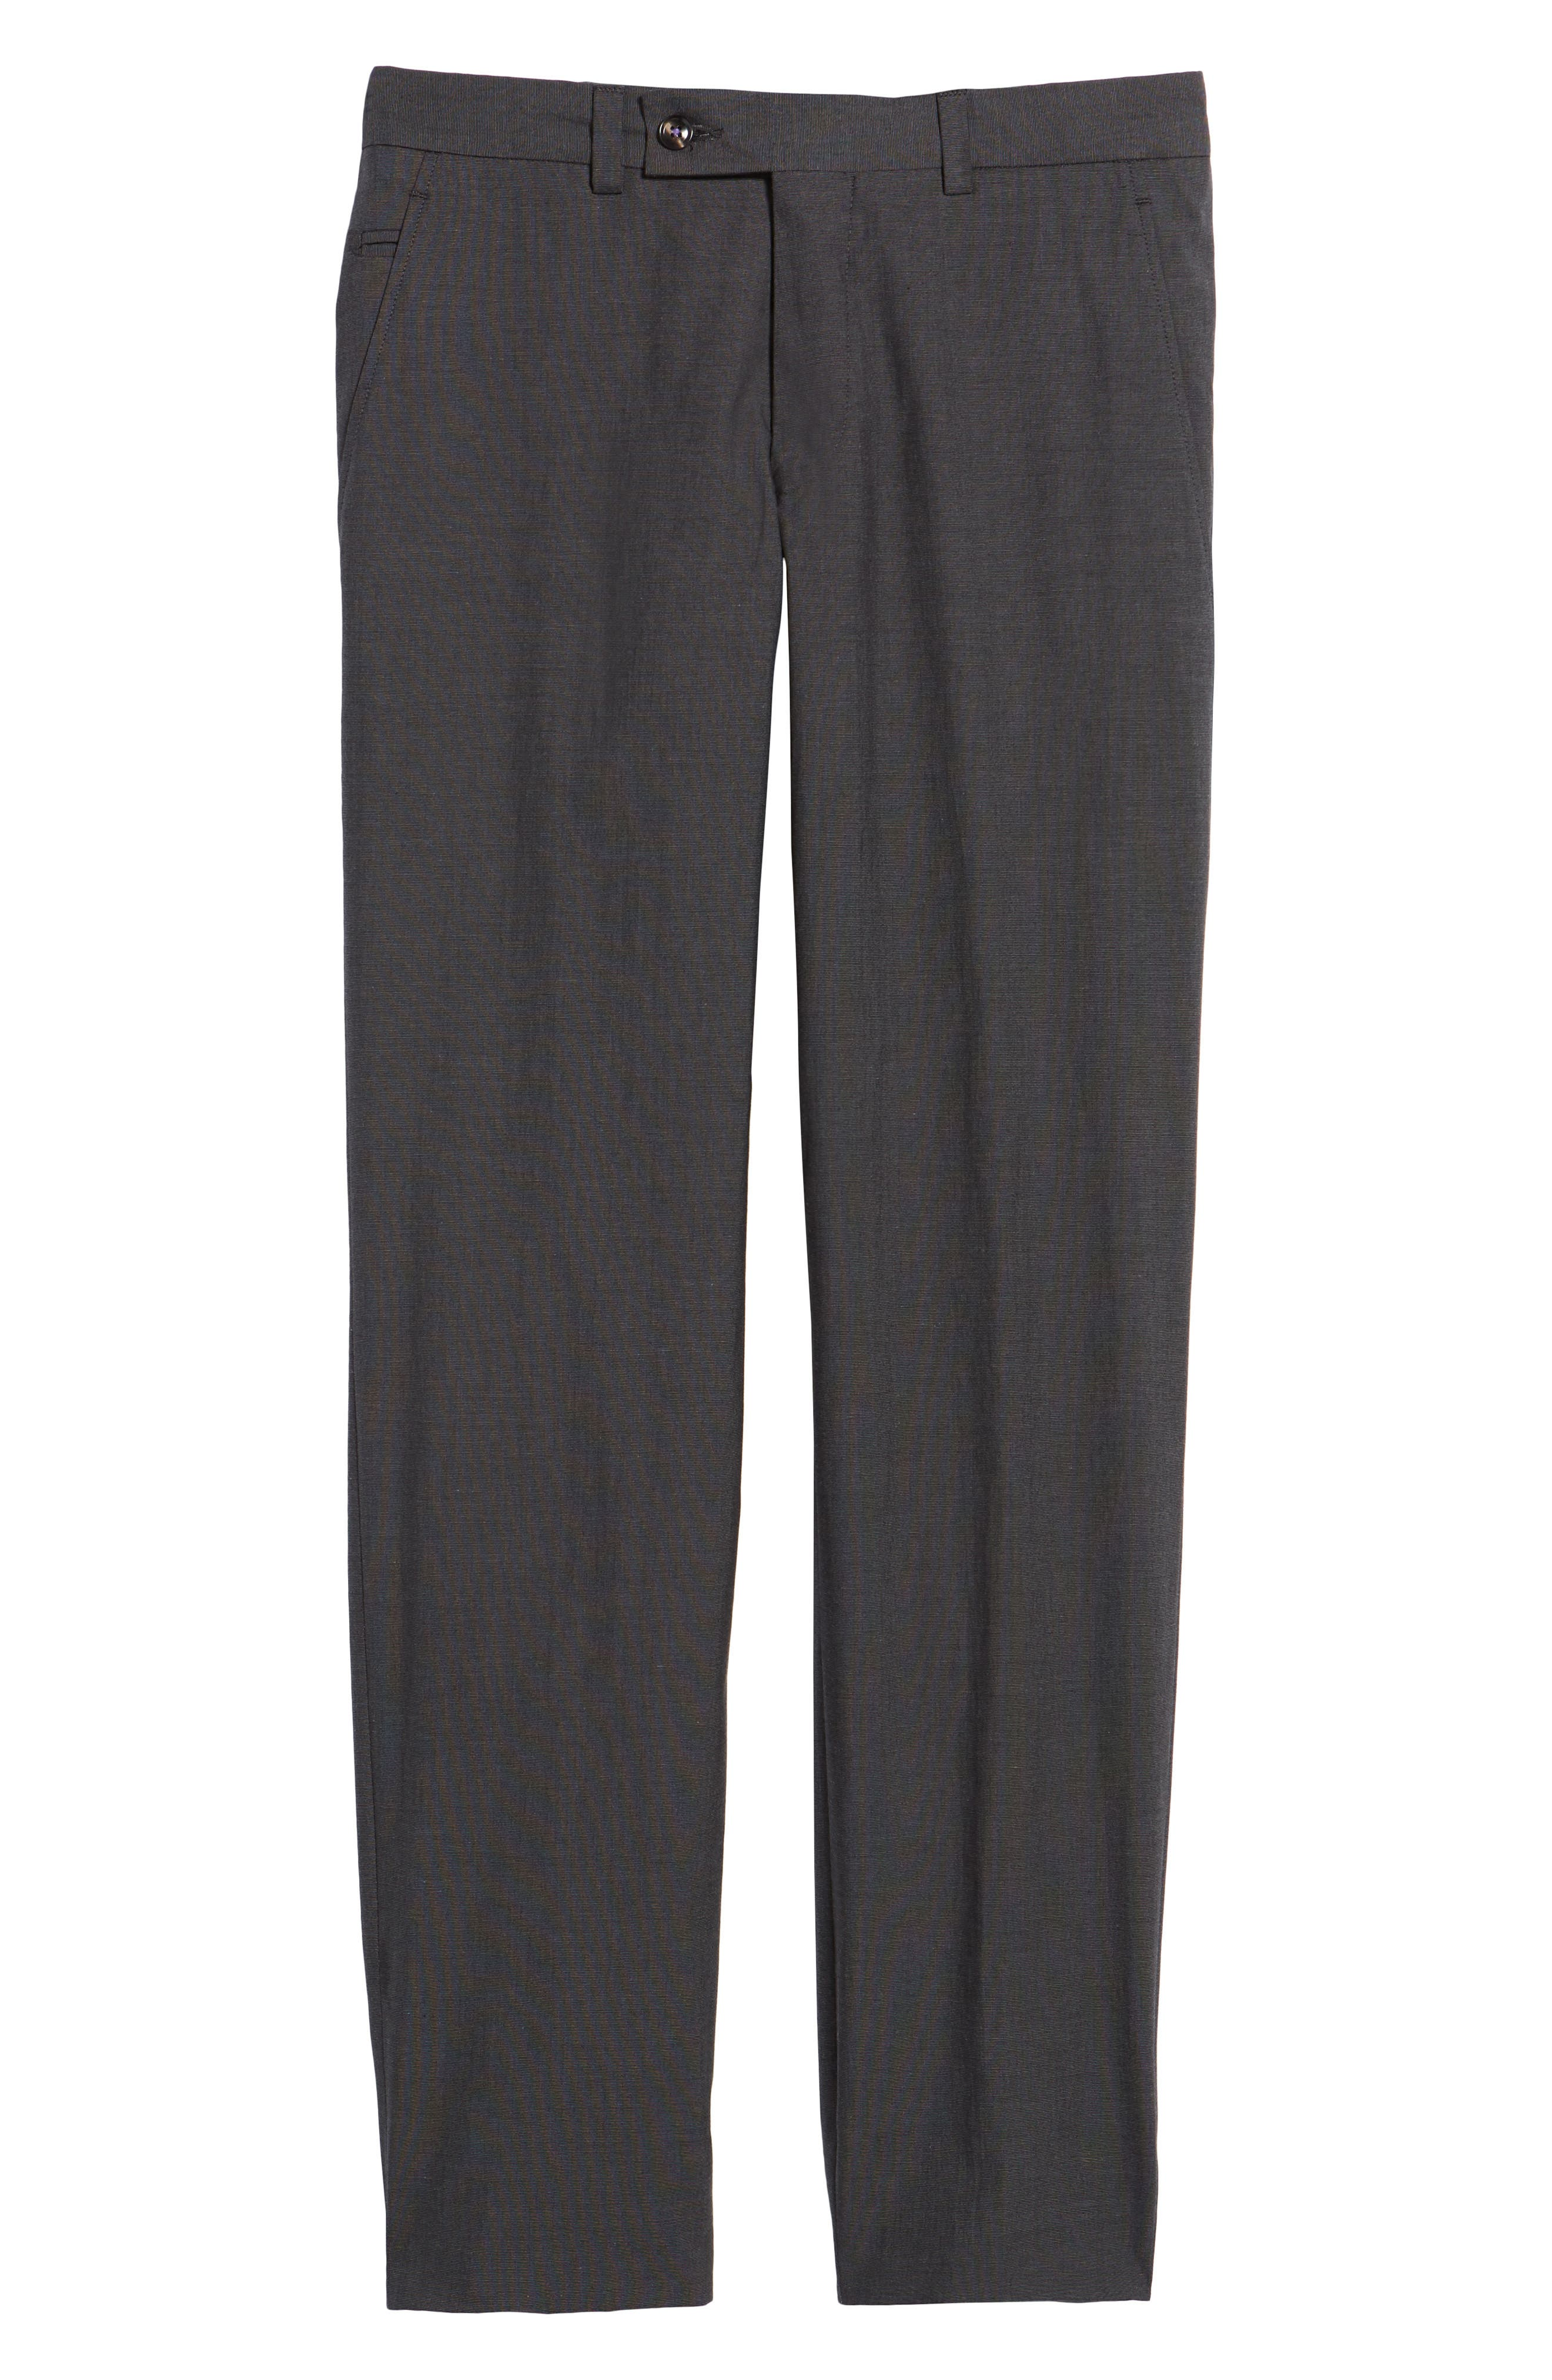 Jerome Flat Front Stretch Solid Cotton Trousers,                             Alternate thumbnail 6, color,                             010